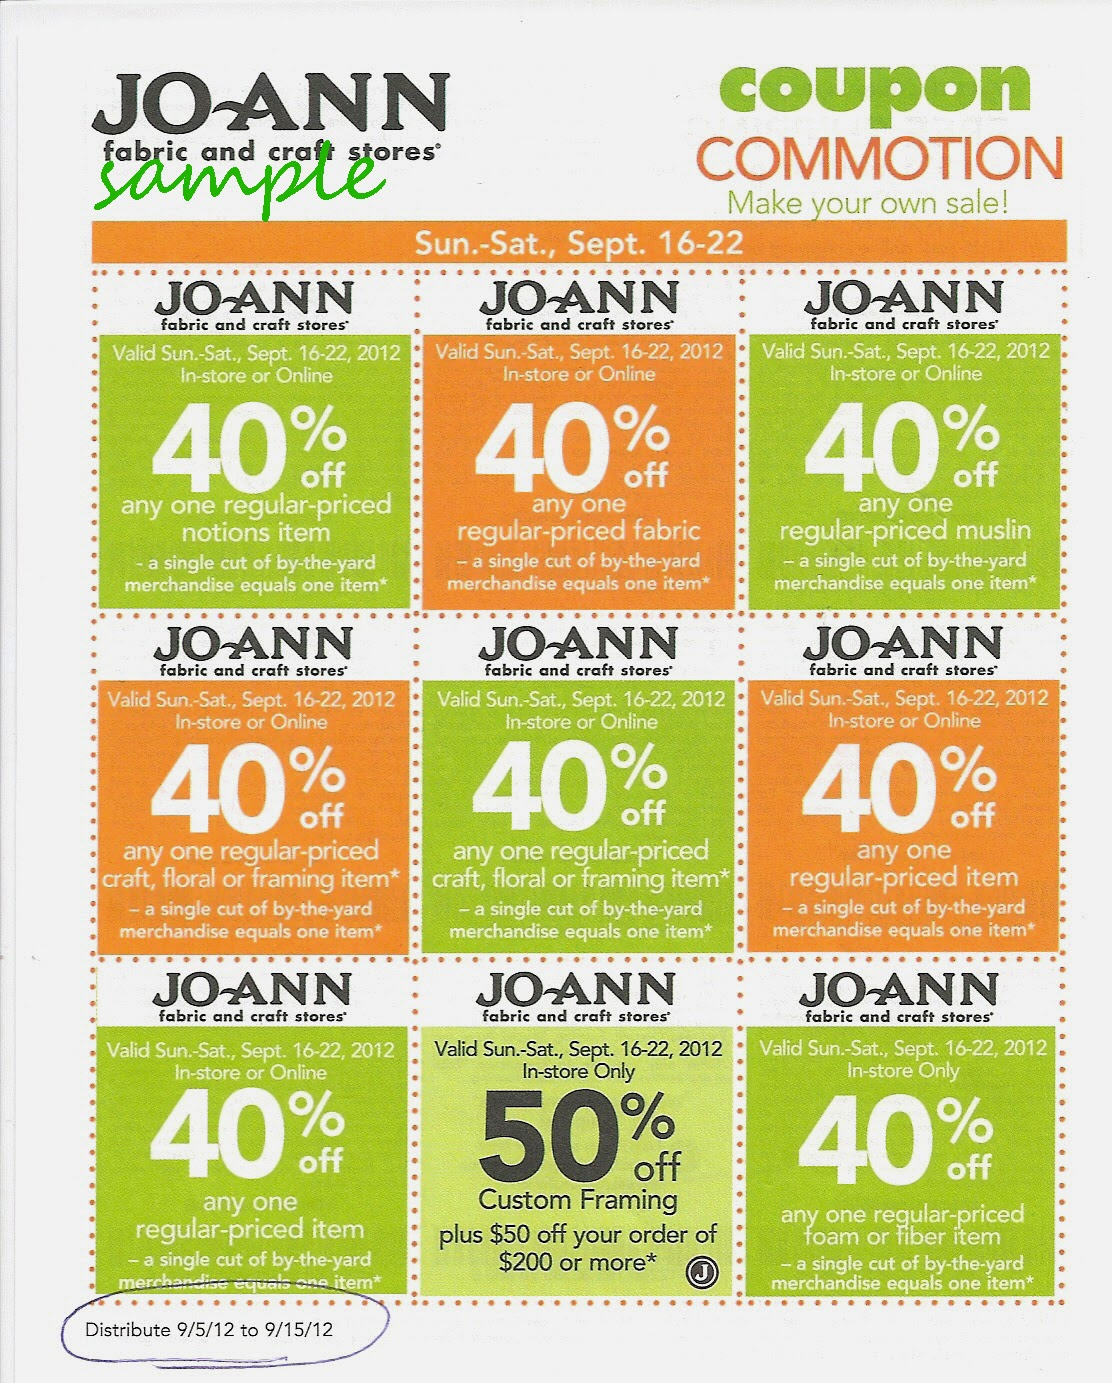 Joanns discount coupons